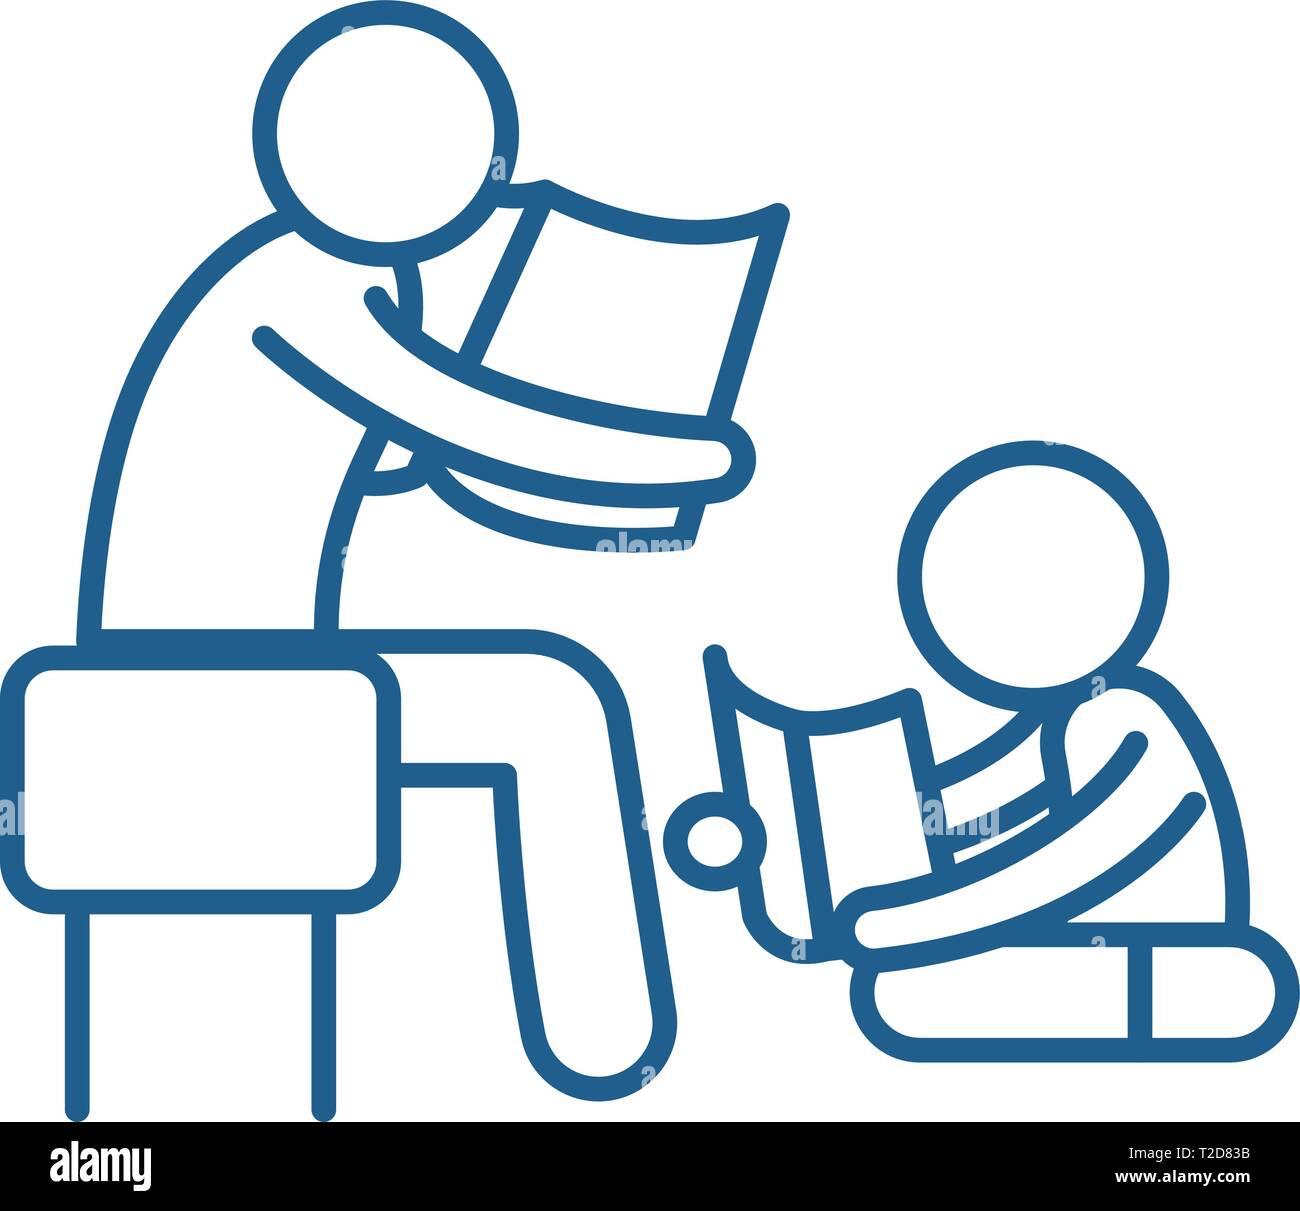 Parent reading a story to a child line icon concept. Parent reading a story to a child flat  vector symbol, sign, outline illustration. - Stock Image